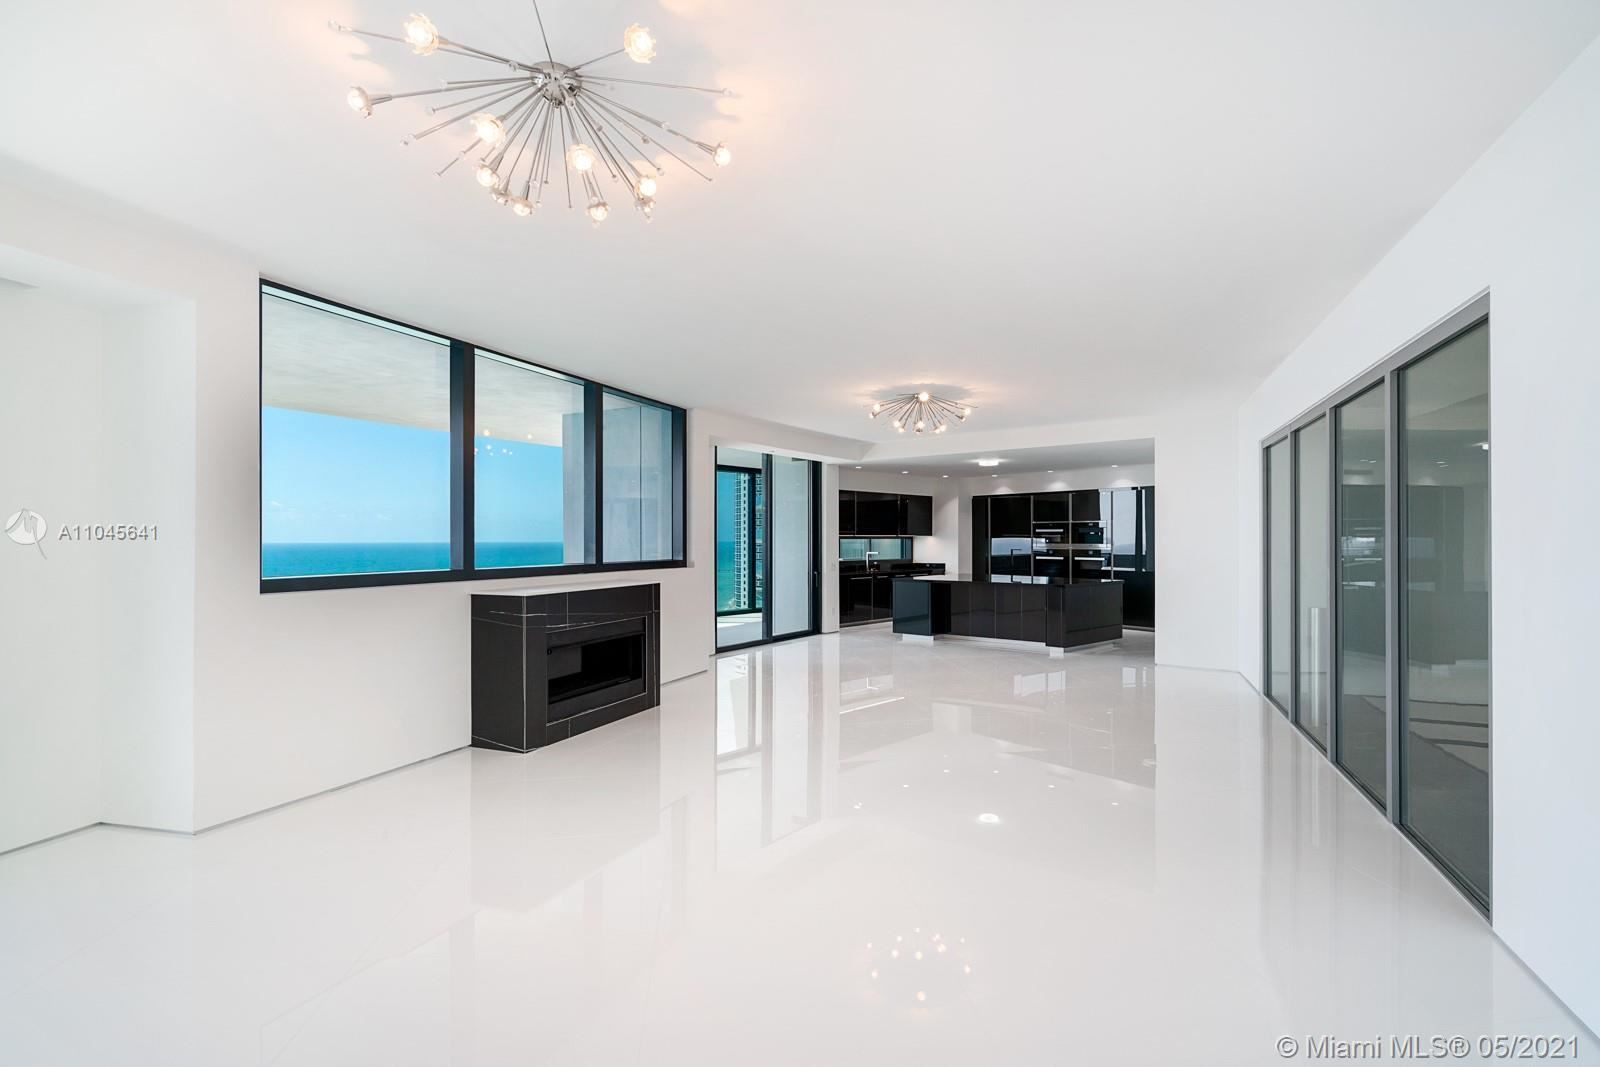 18555 Collins Ave #2801, Sunny Isles, FL 33160 - #: A11045641